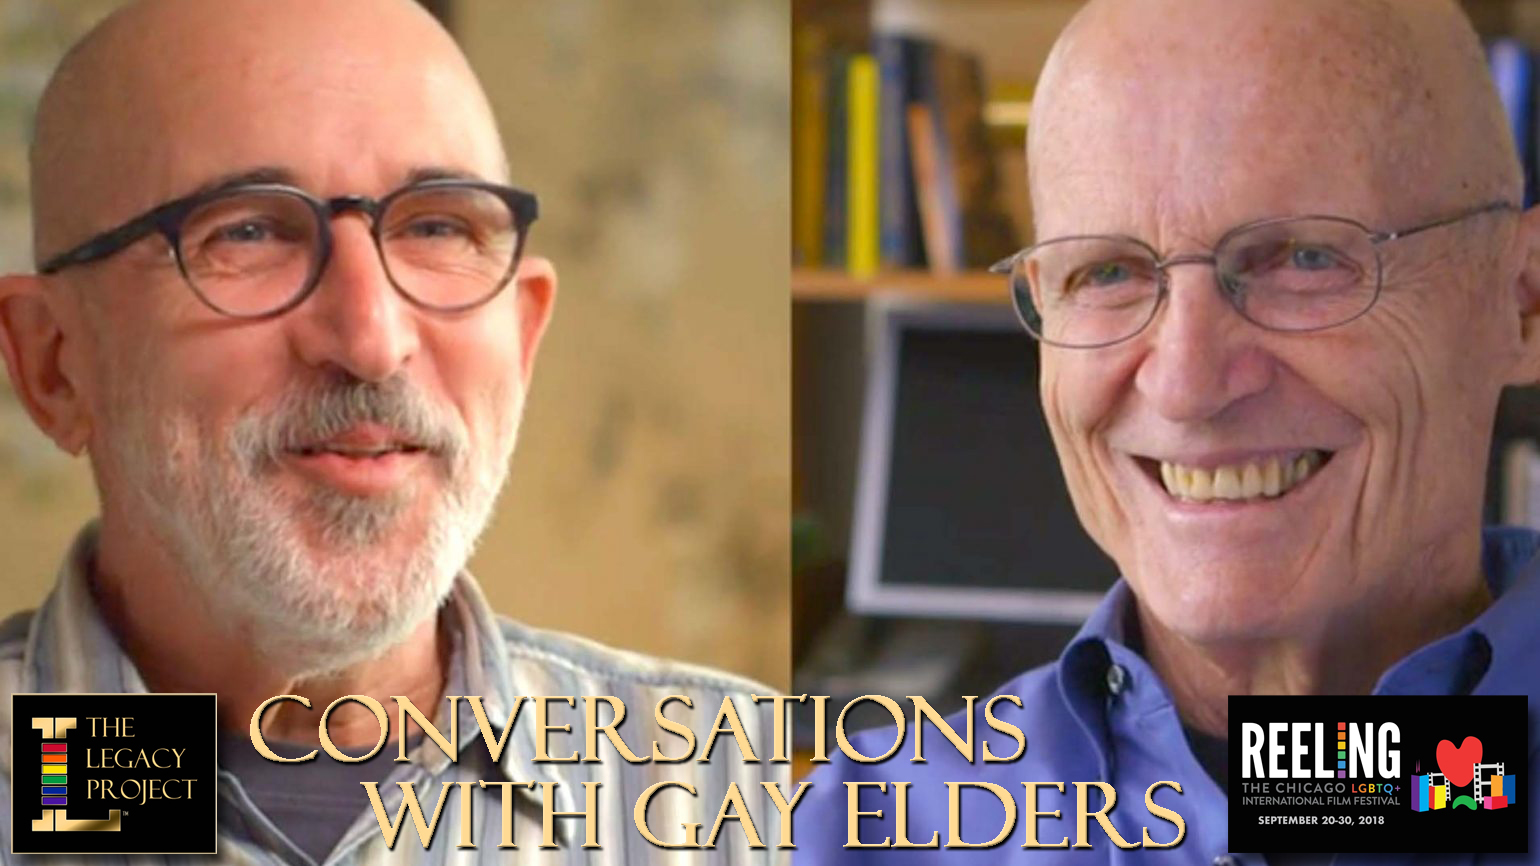 LEGACY LIVE Conversation with Gay Elders at the Reeling Film Festival 2018